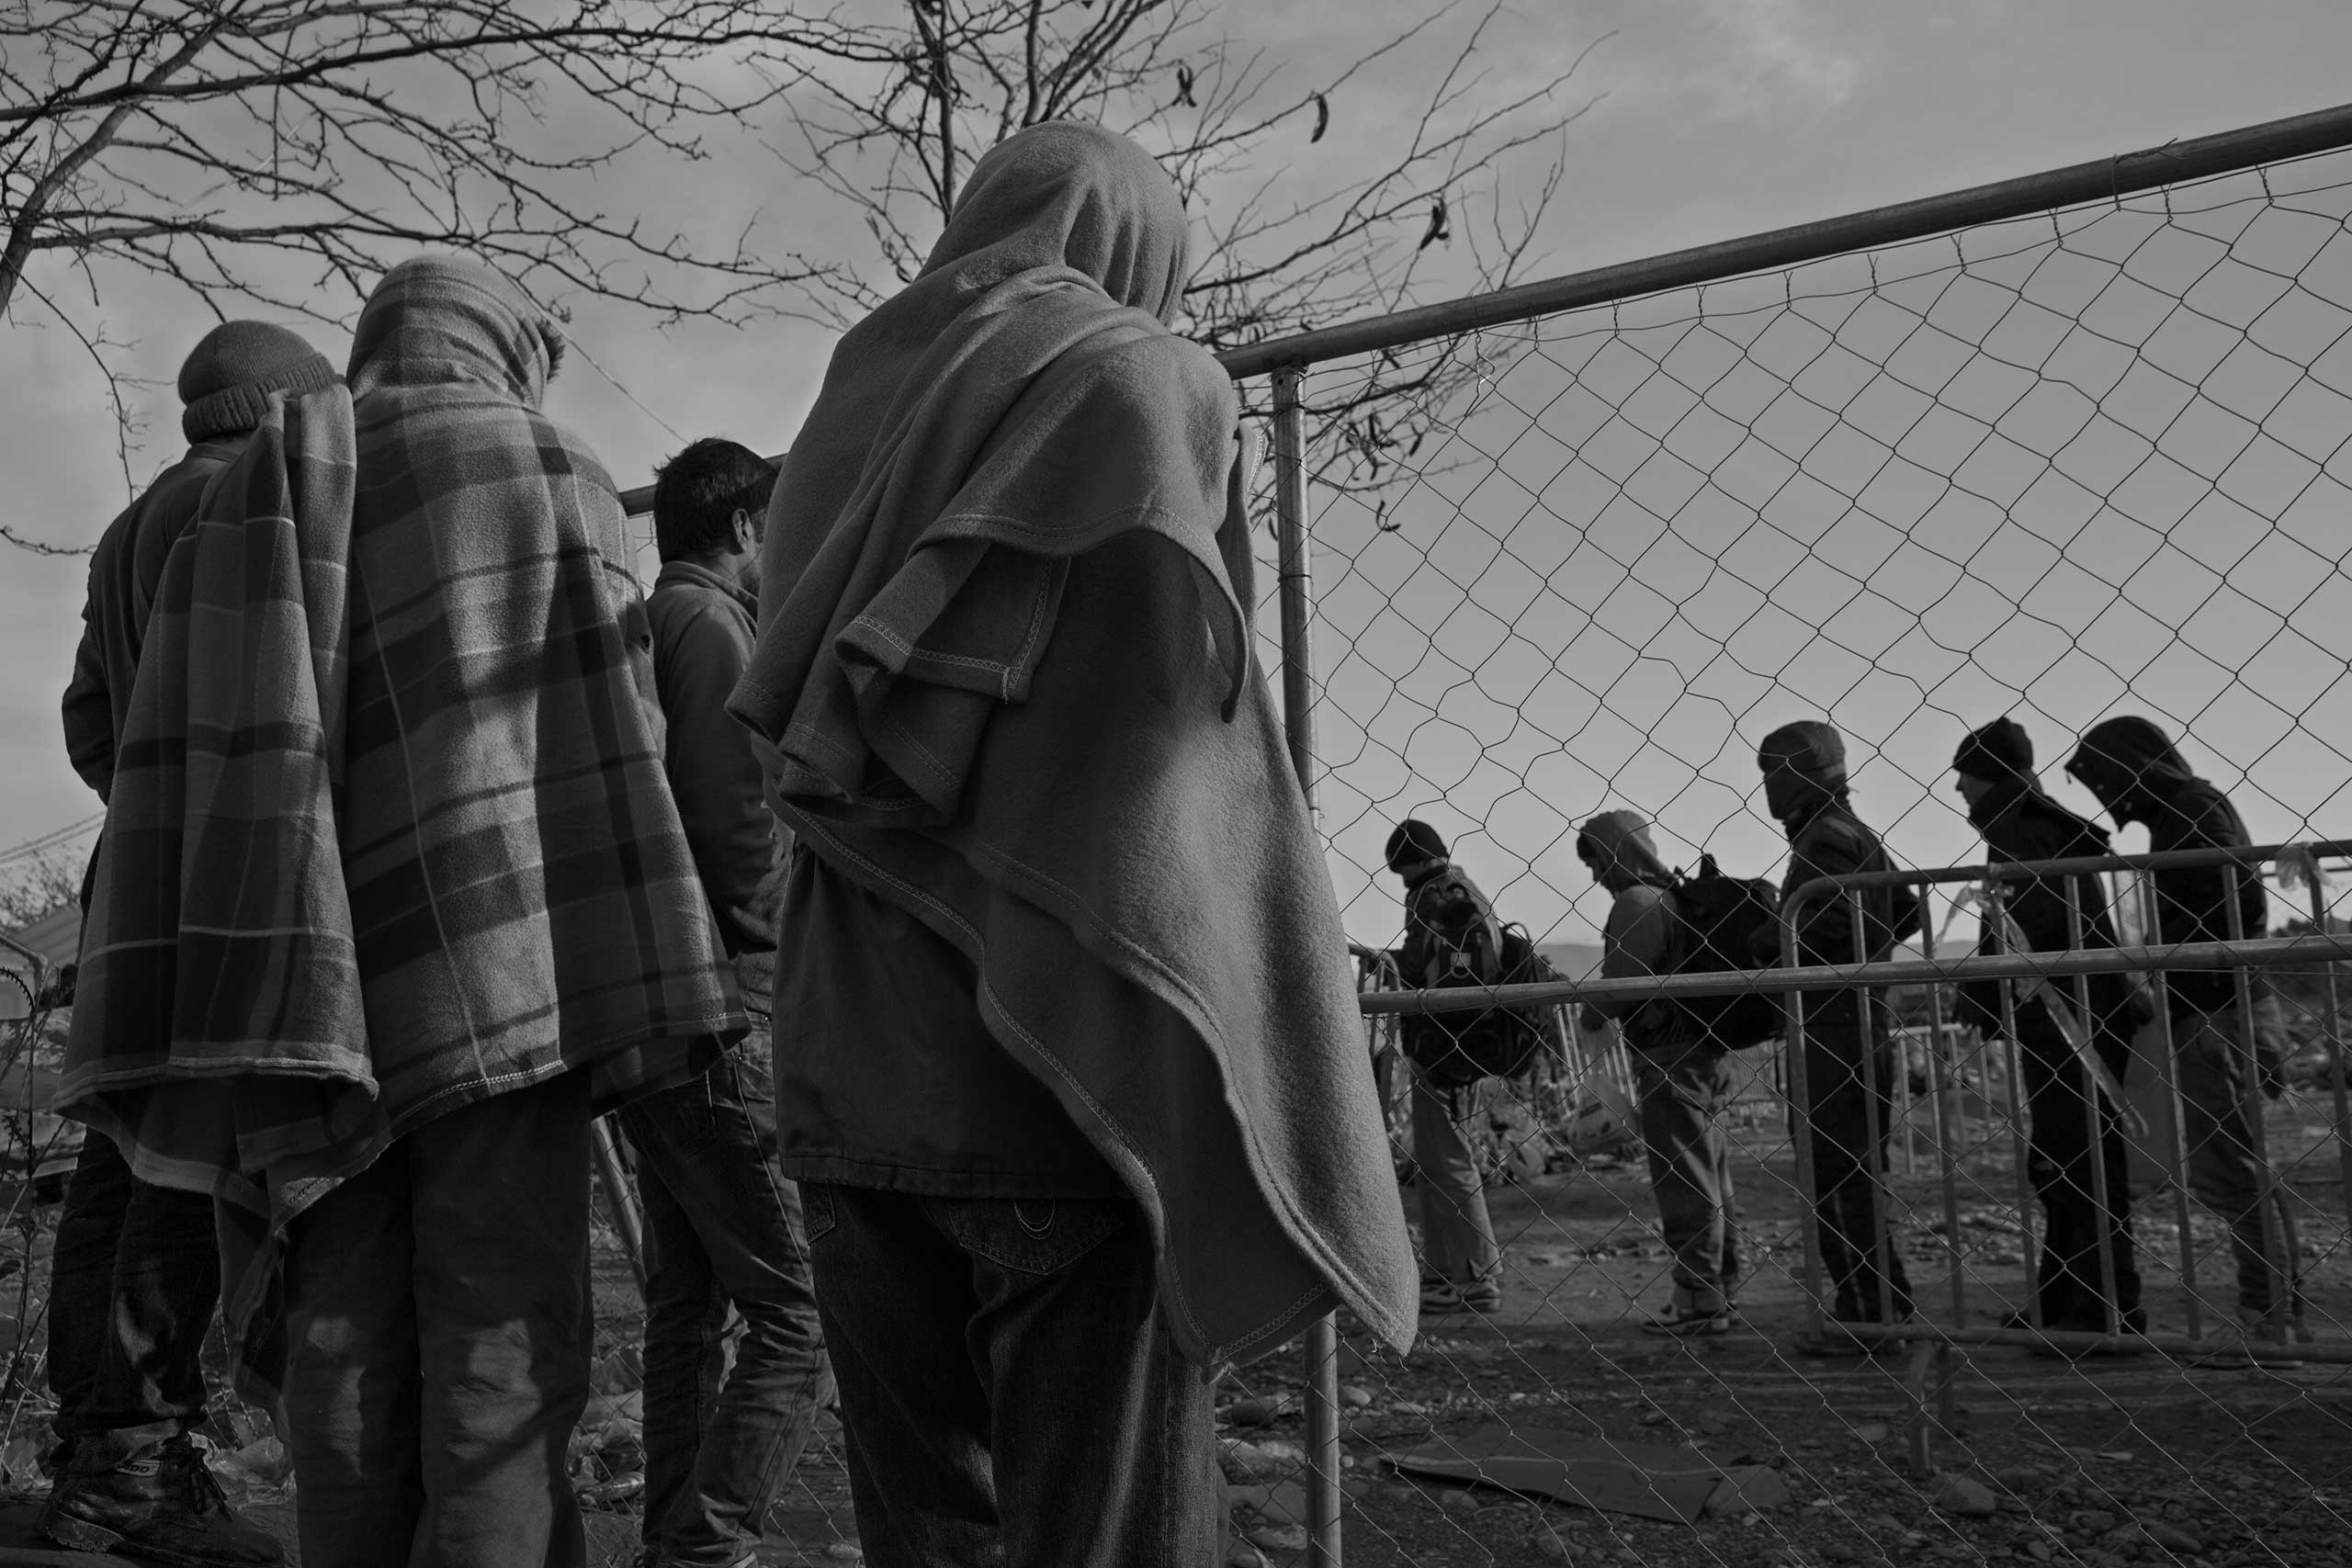 Refugees and migrants from Morocco, Iran, Pakistan, Bangladesh and Somalia, who are not permitted to cross from Greece into Macedonia, watch as those from war-torn countries of Afghanistan, Iraq and Syria, pass into Macedonia.